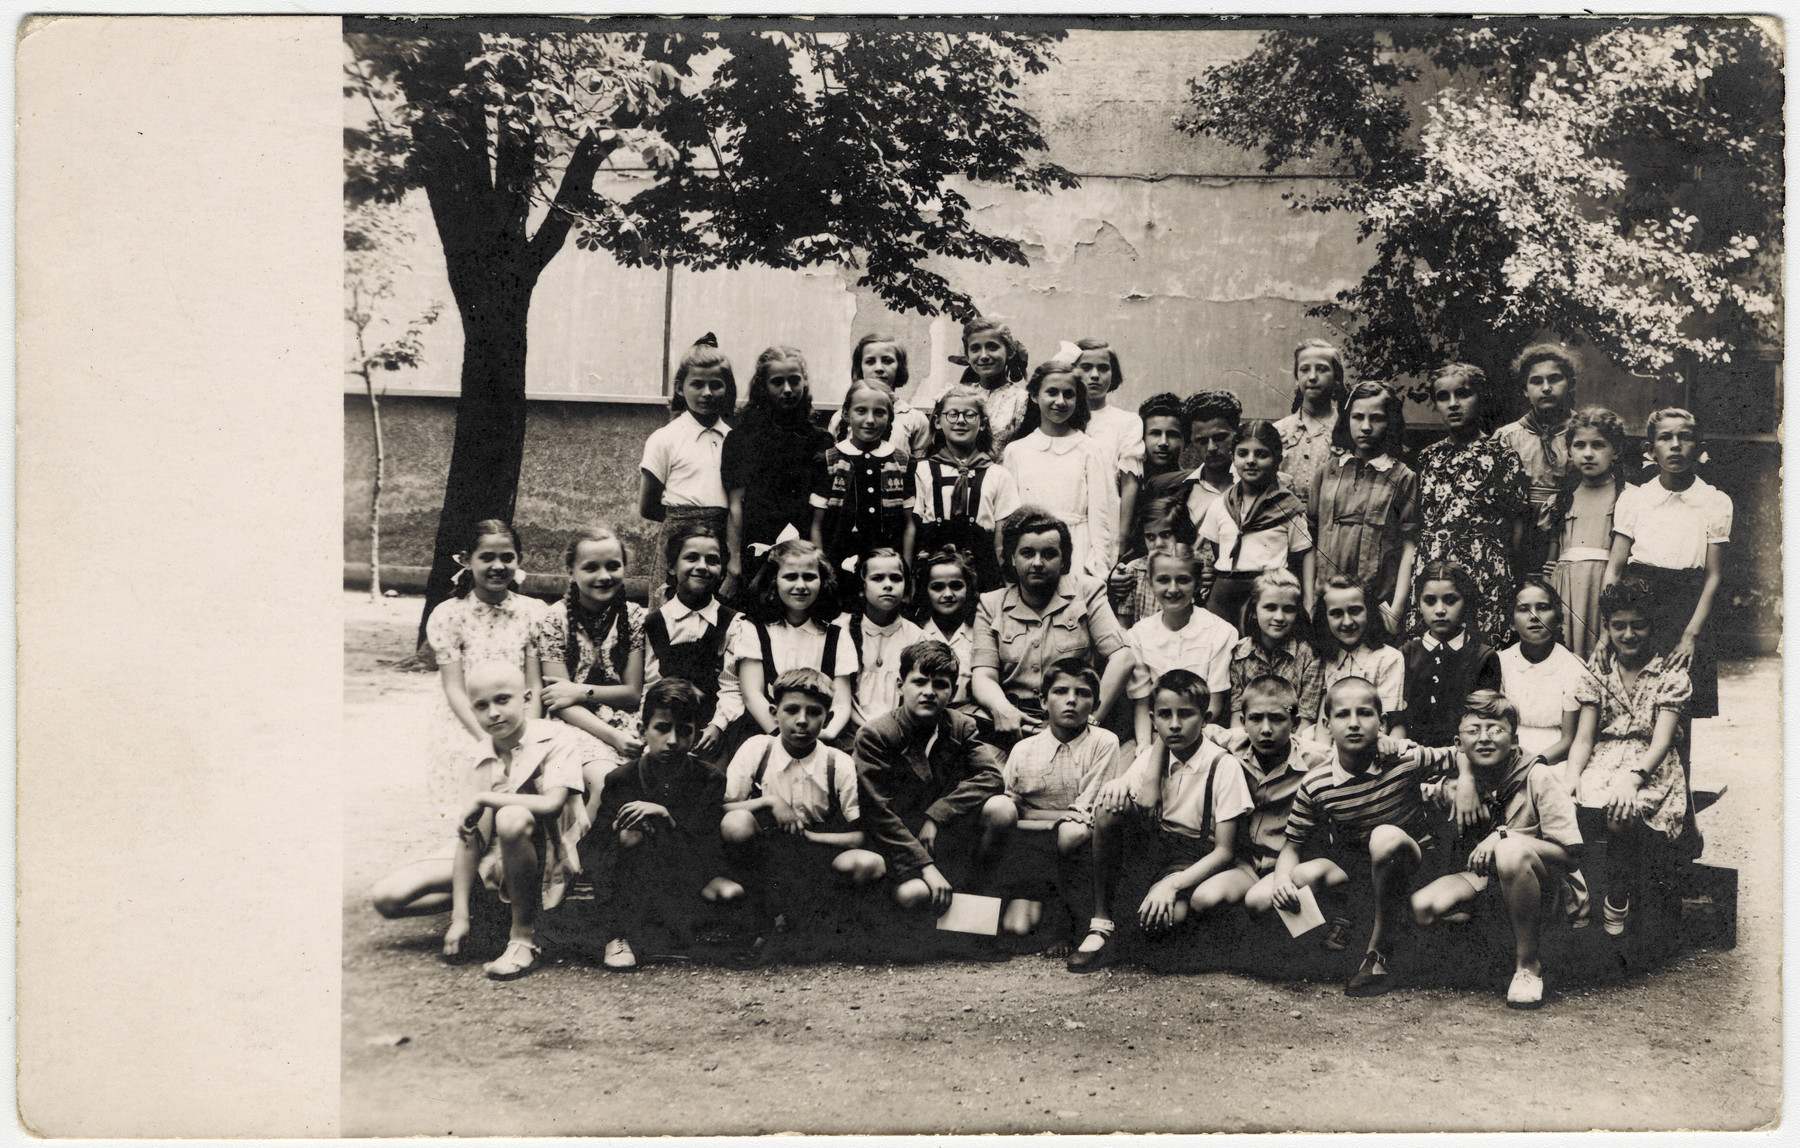 Postwar picture of an elementary school class in Zagreb.  Many of the students are wearing red Pioneer neck scarves.  Among those pictured is Rina Willer, standing third from the right.